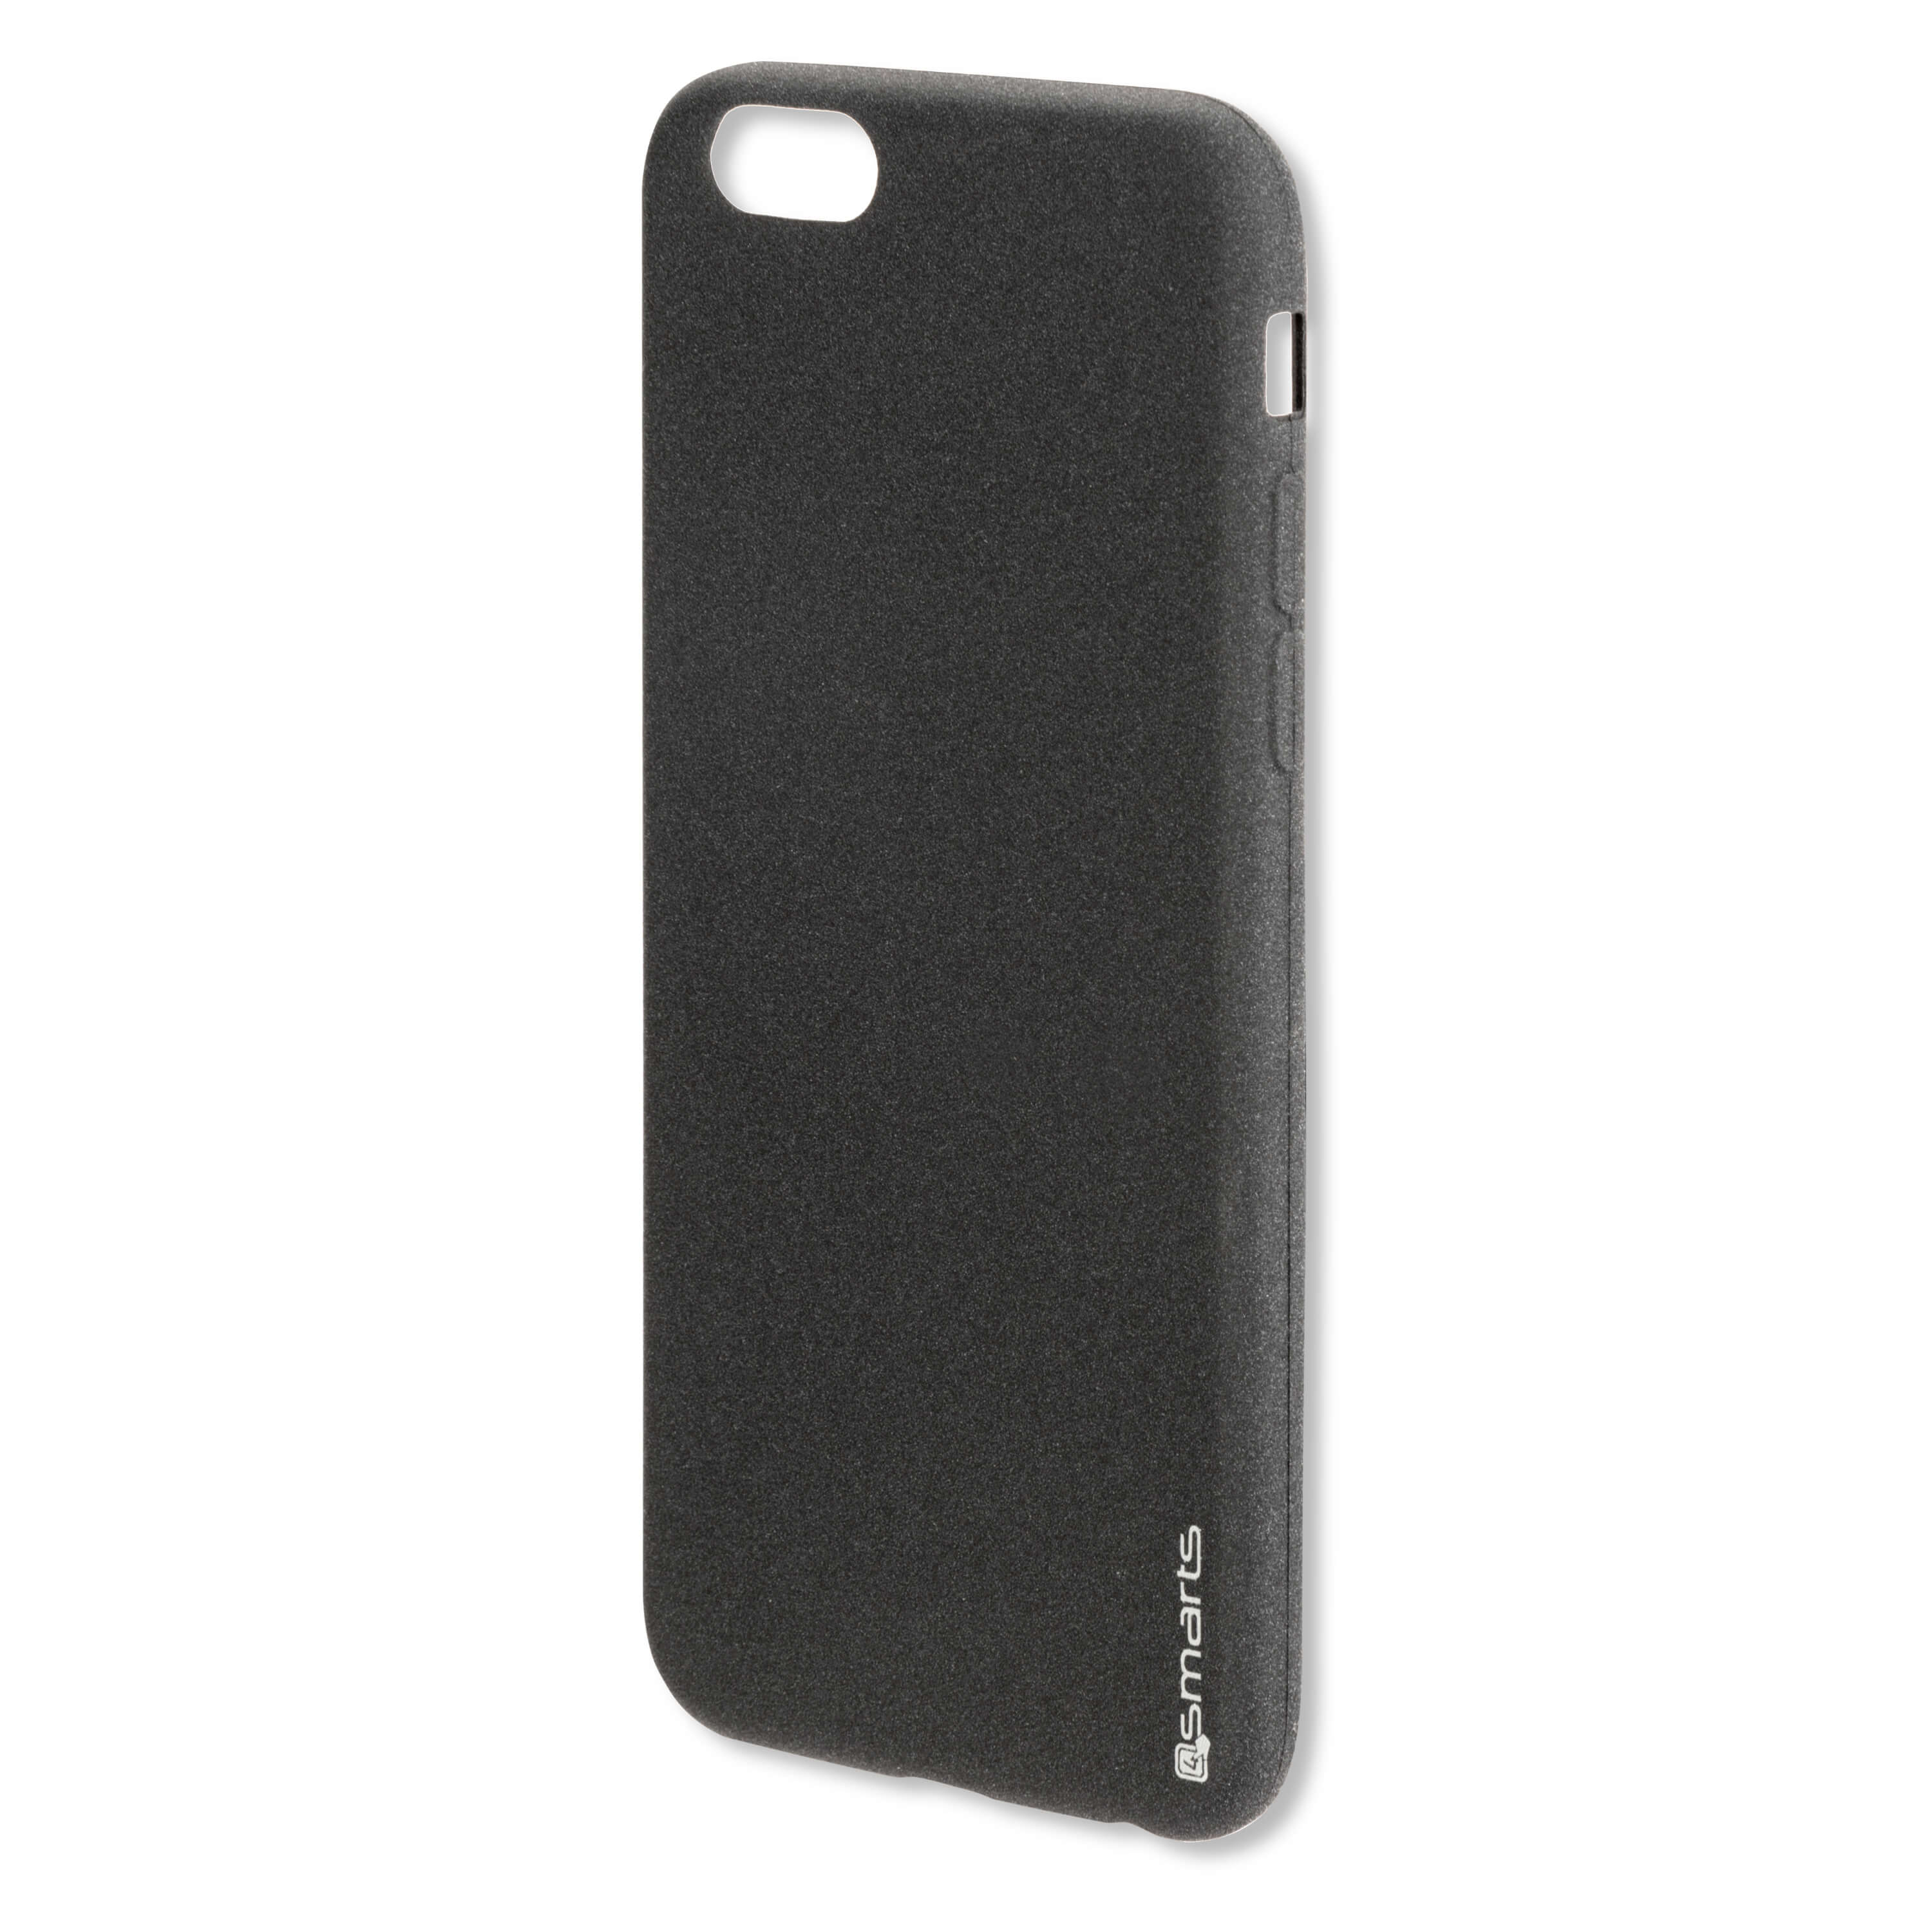 custodia iphone 6 tucch